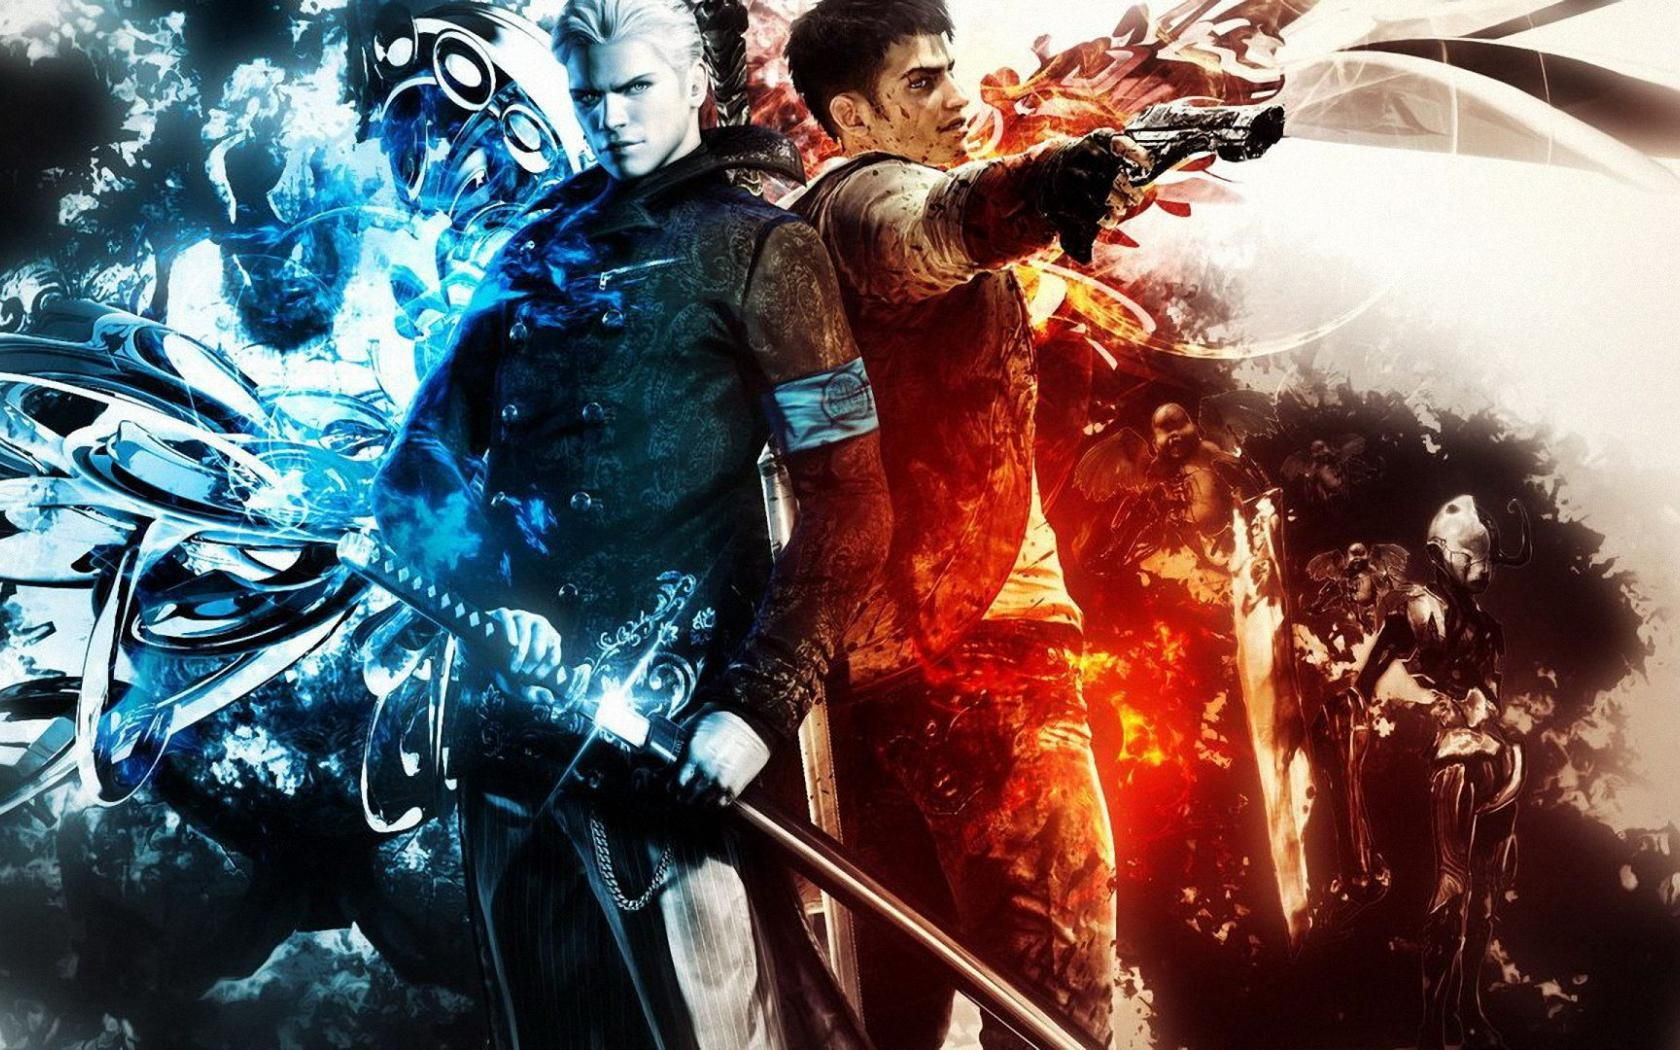 Devil May Cry 5 Wallpaper Hd Free Download ของดนาซอ Devil